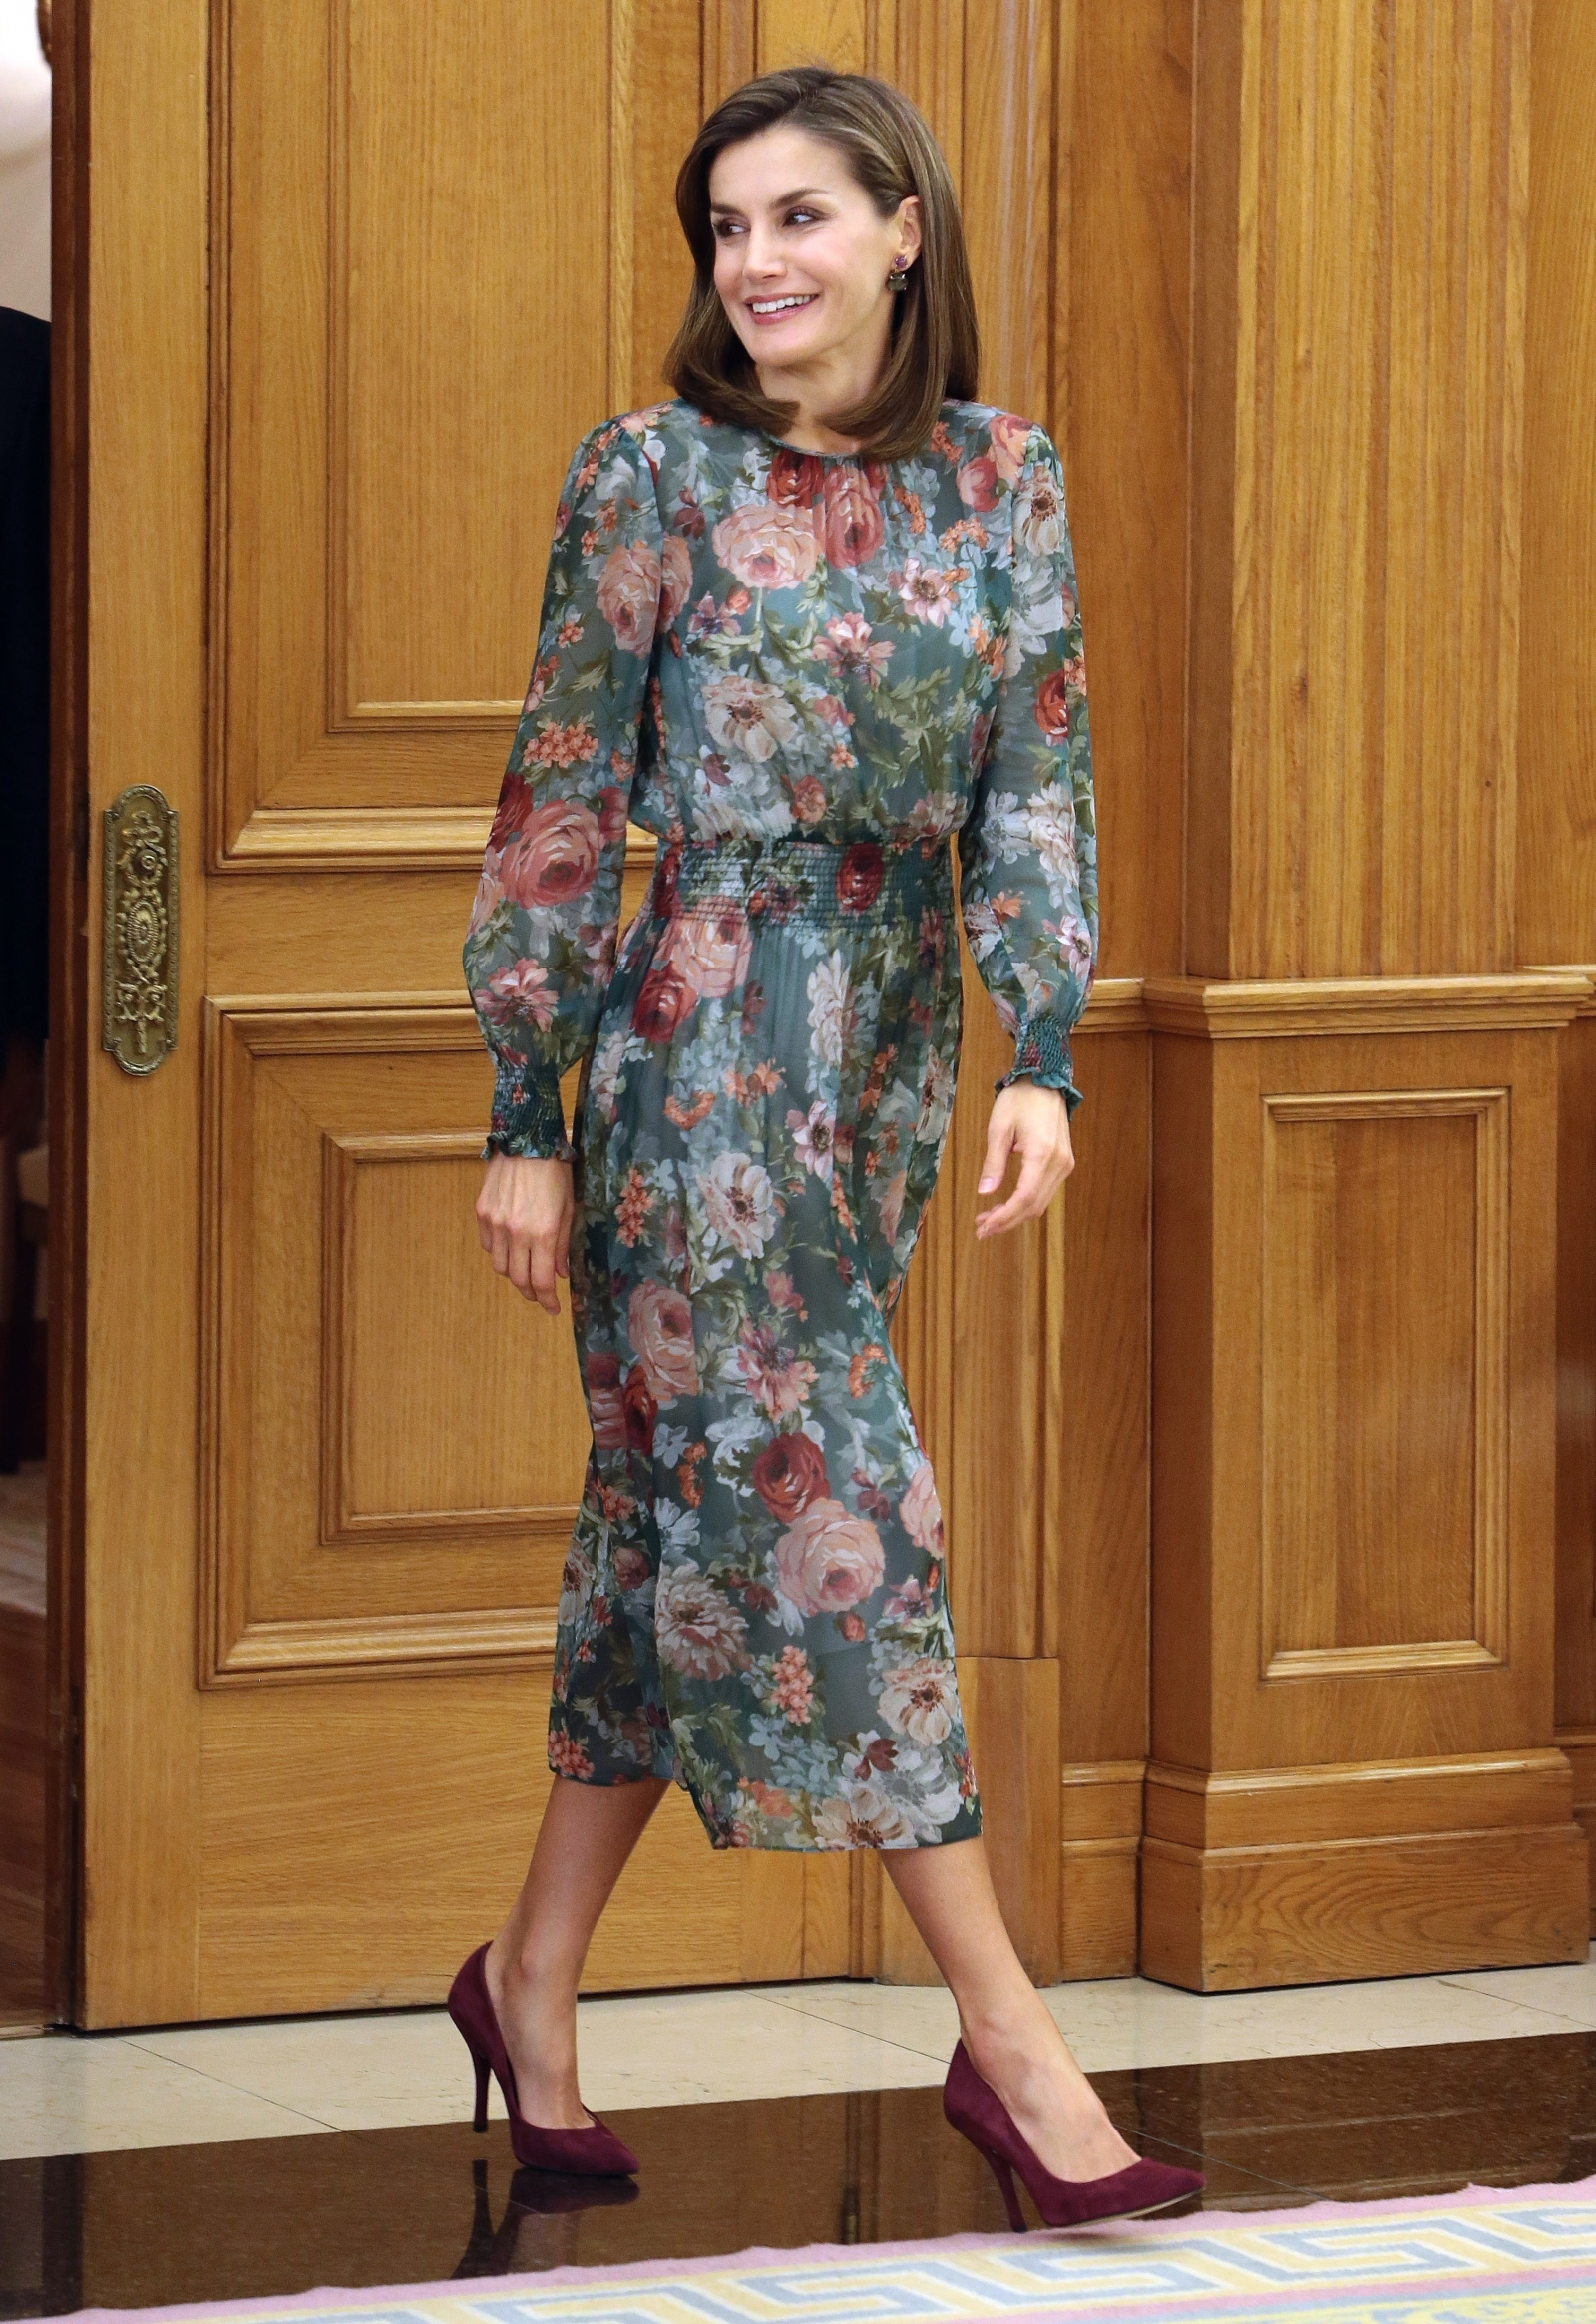 Queen Letizia of Spain recycles her favourite floral shirt dress